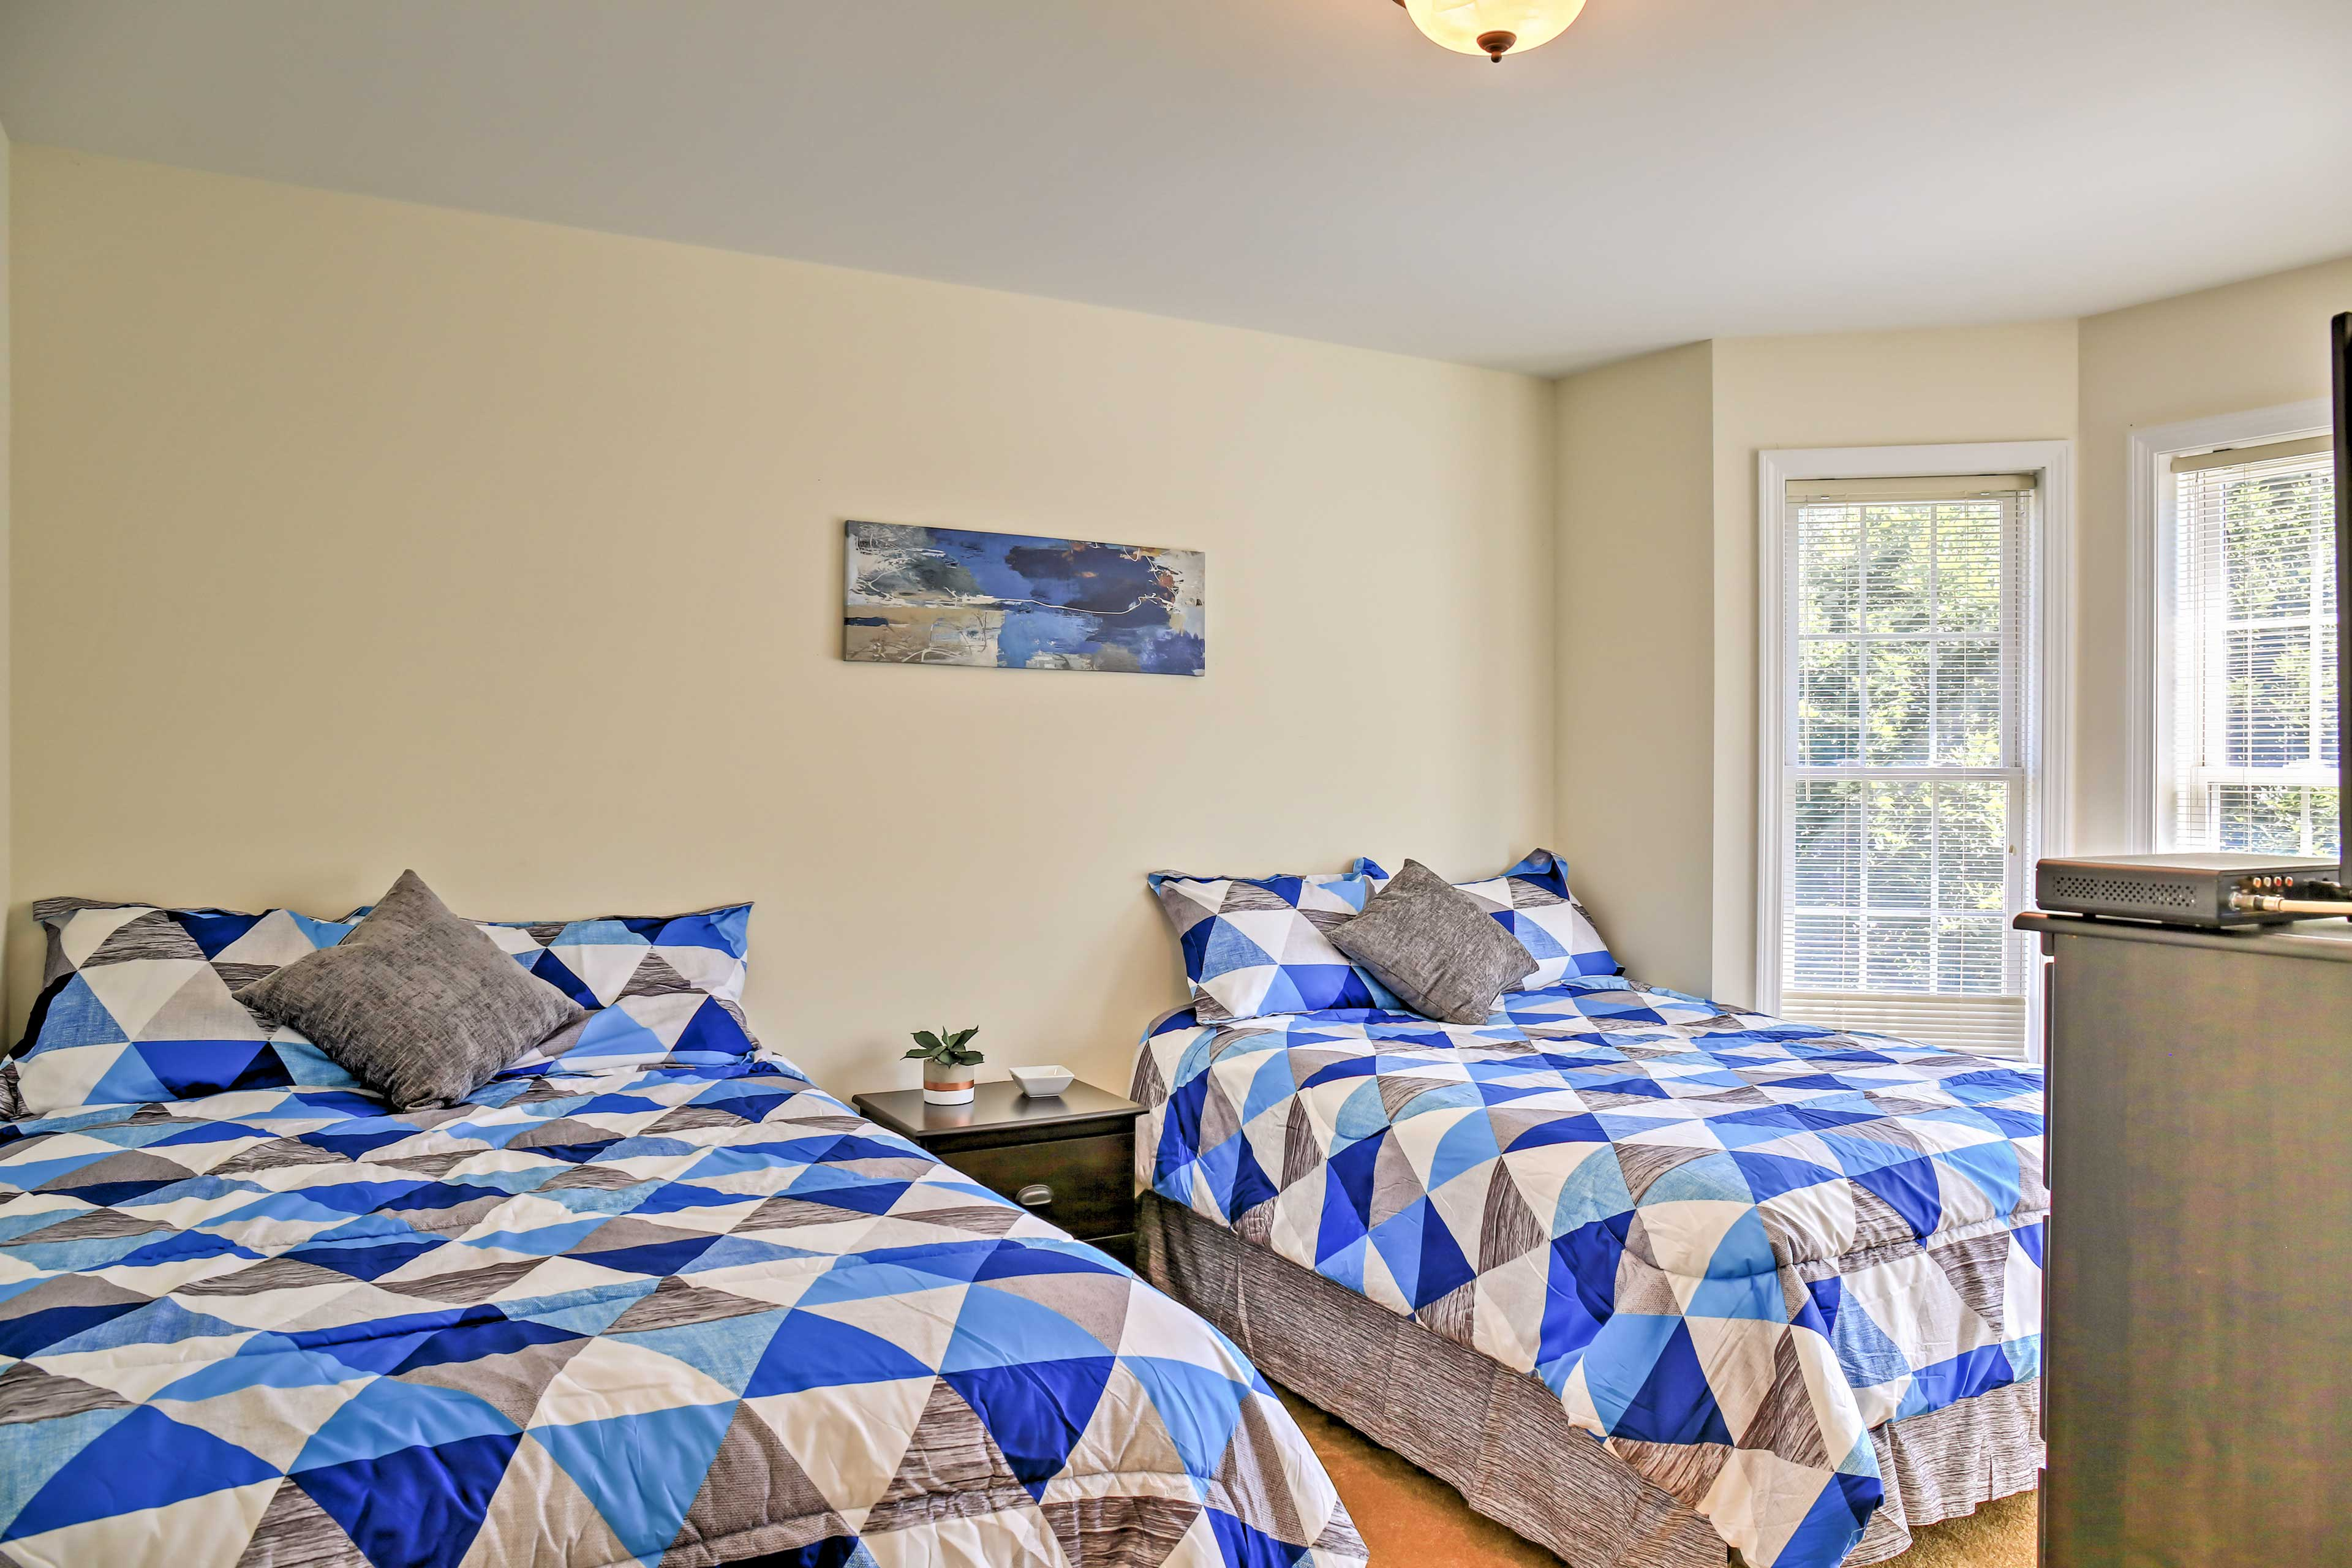 Two full beds can accommodate 4 guests.